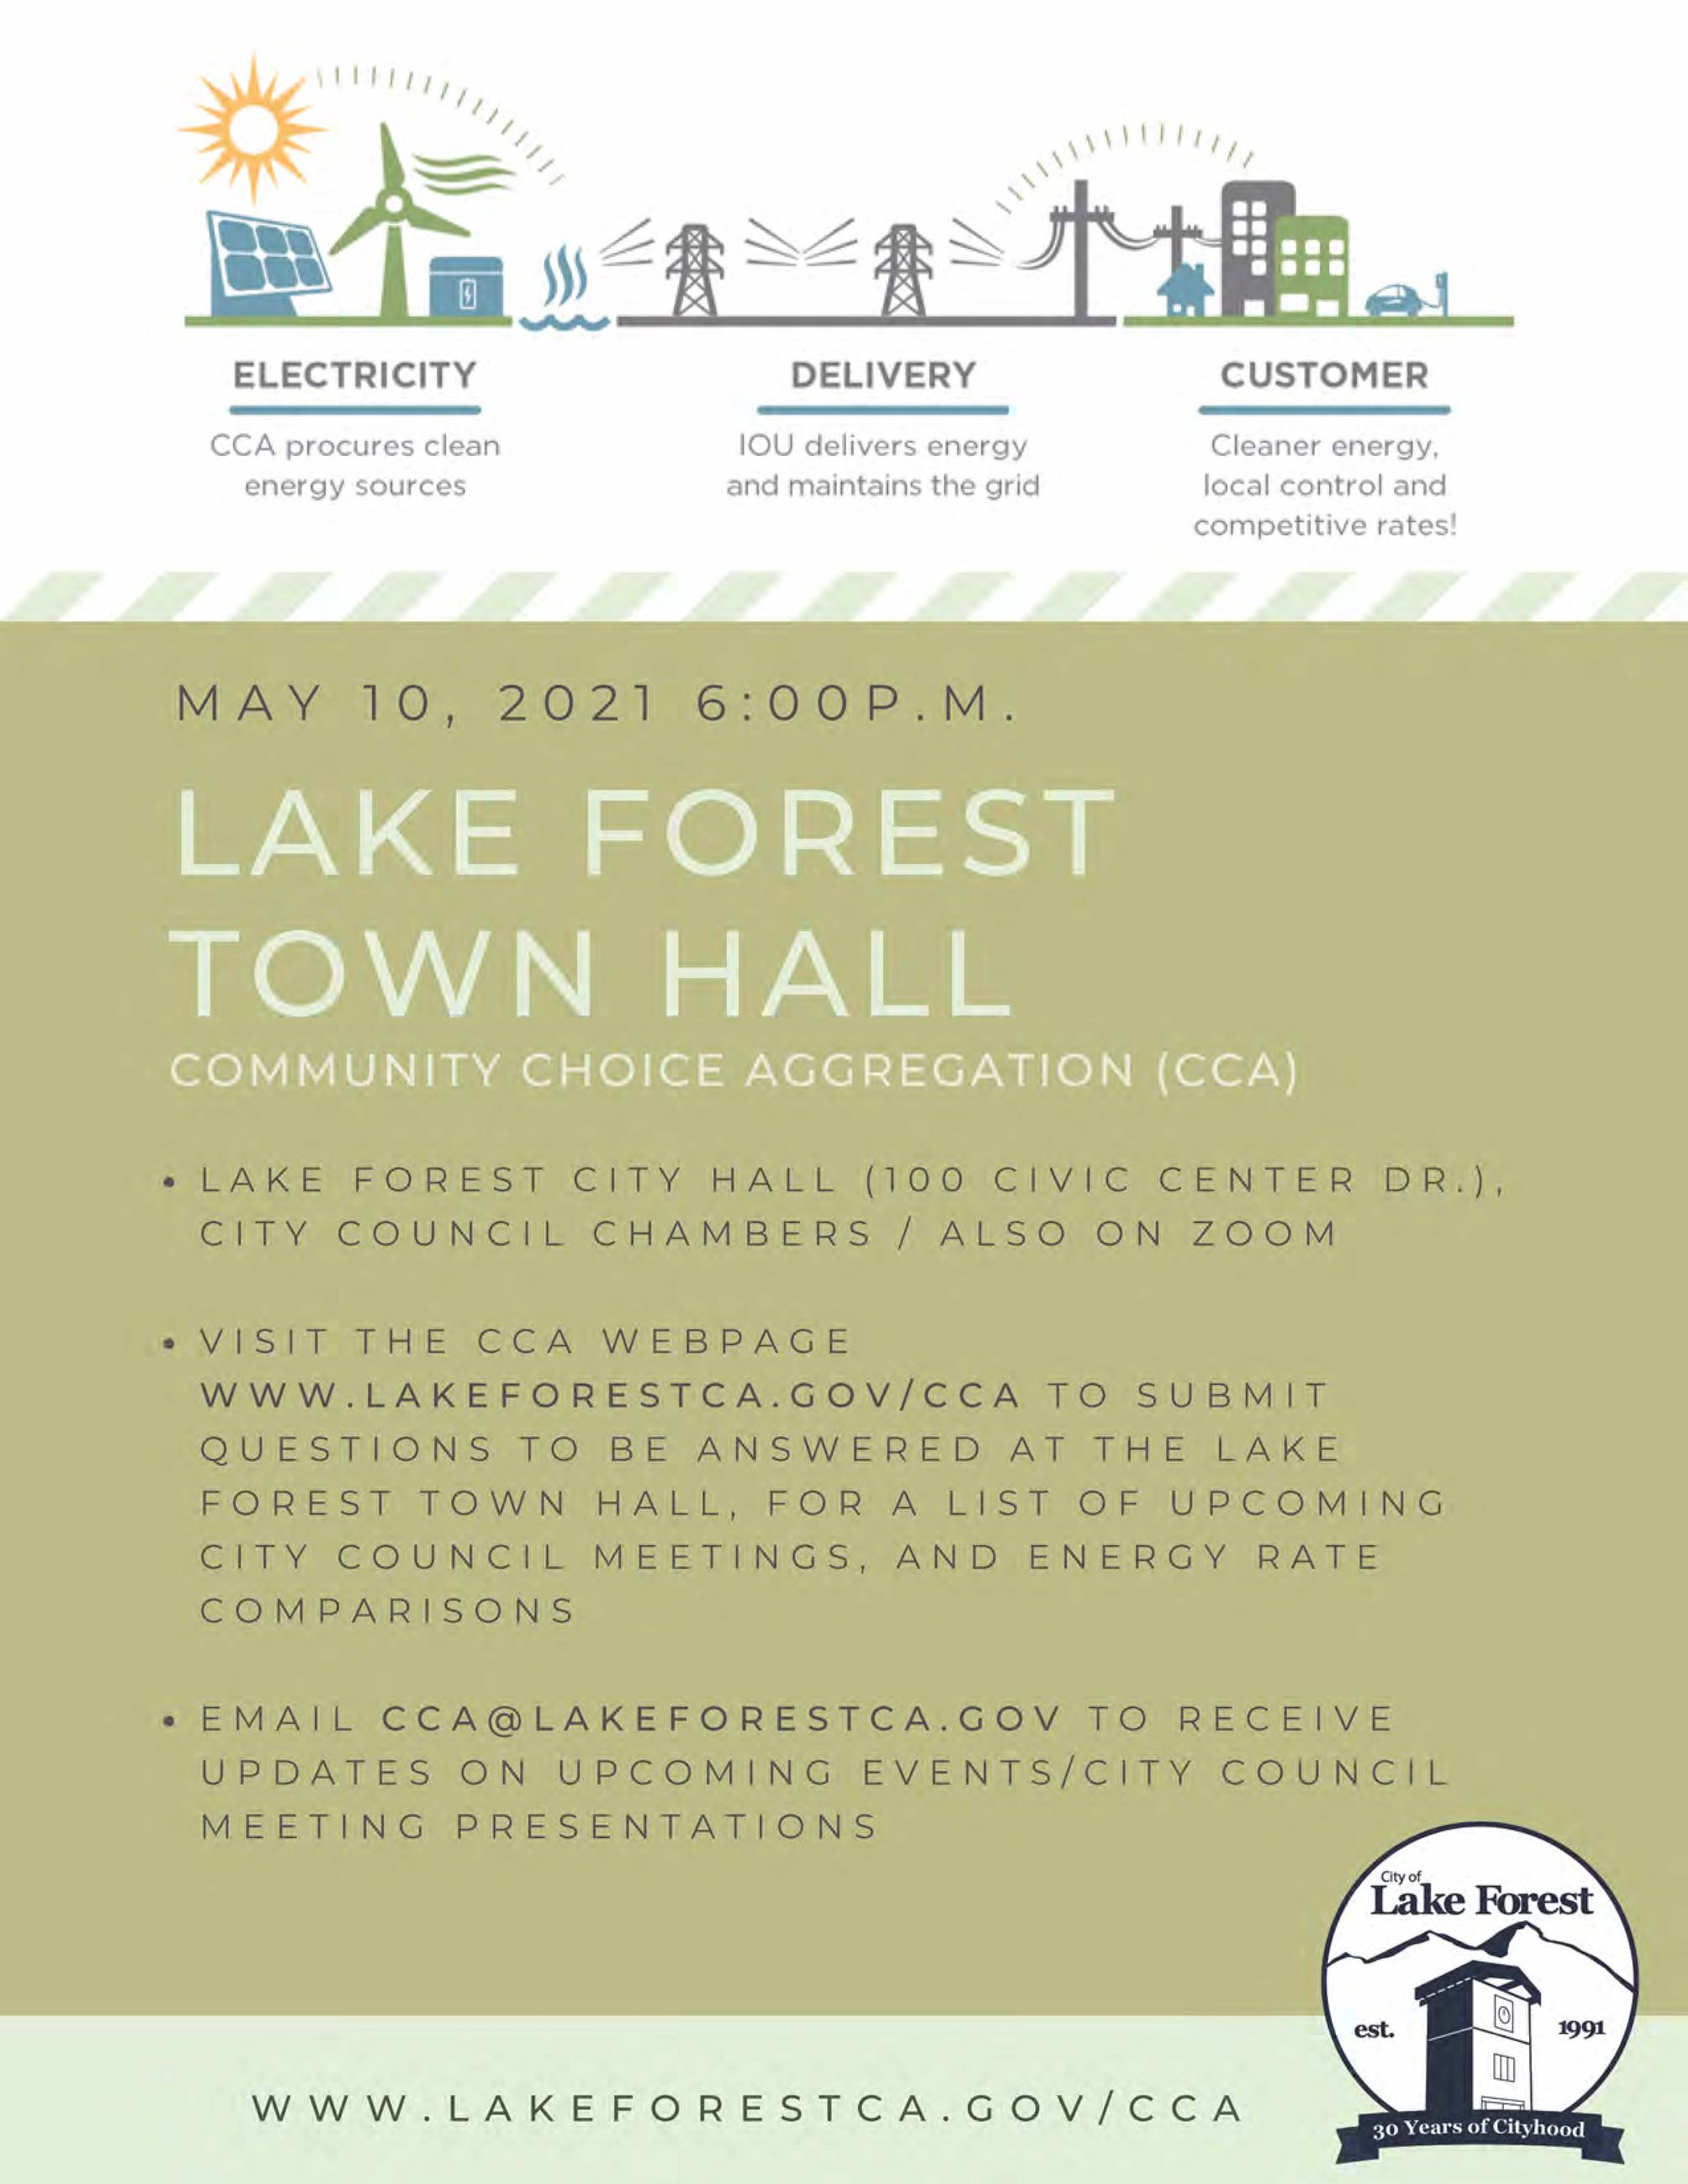 Lake Forest Town Hall - Community Choice Aggregation